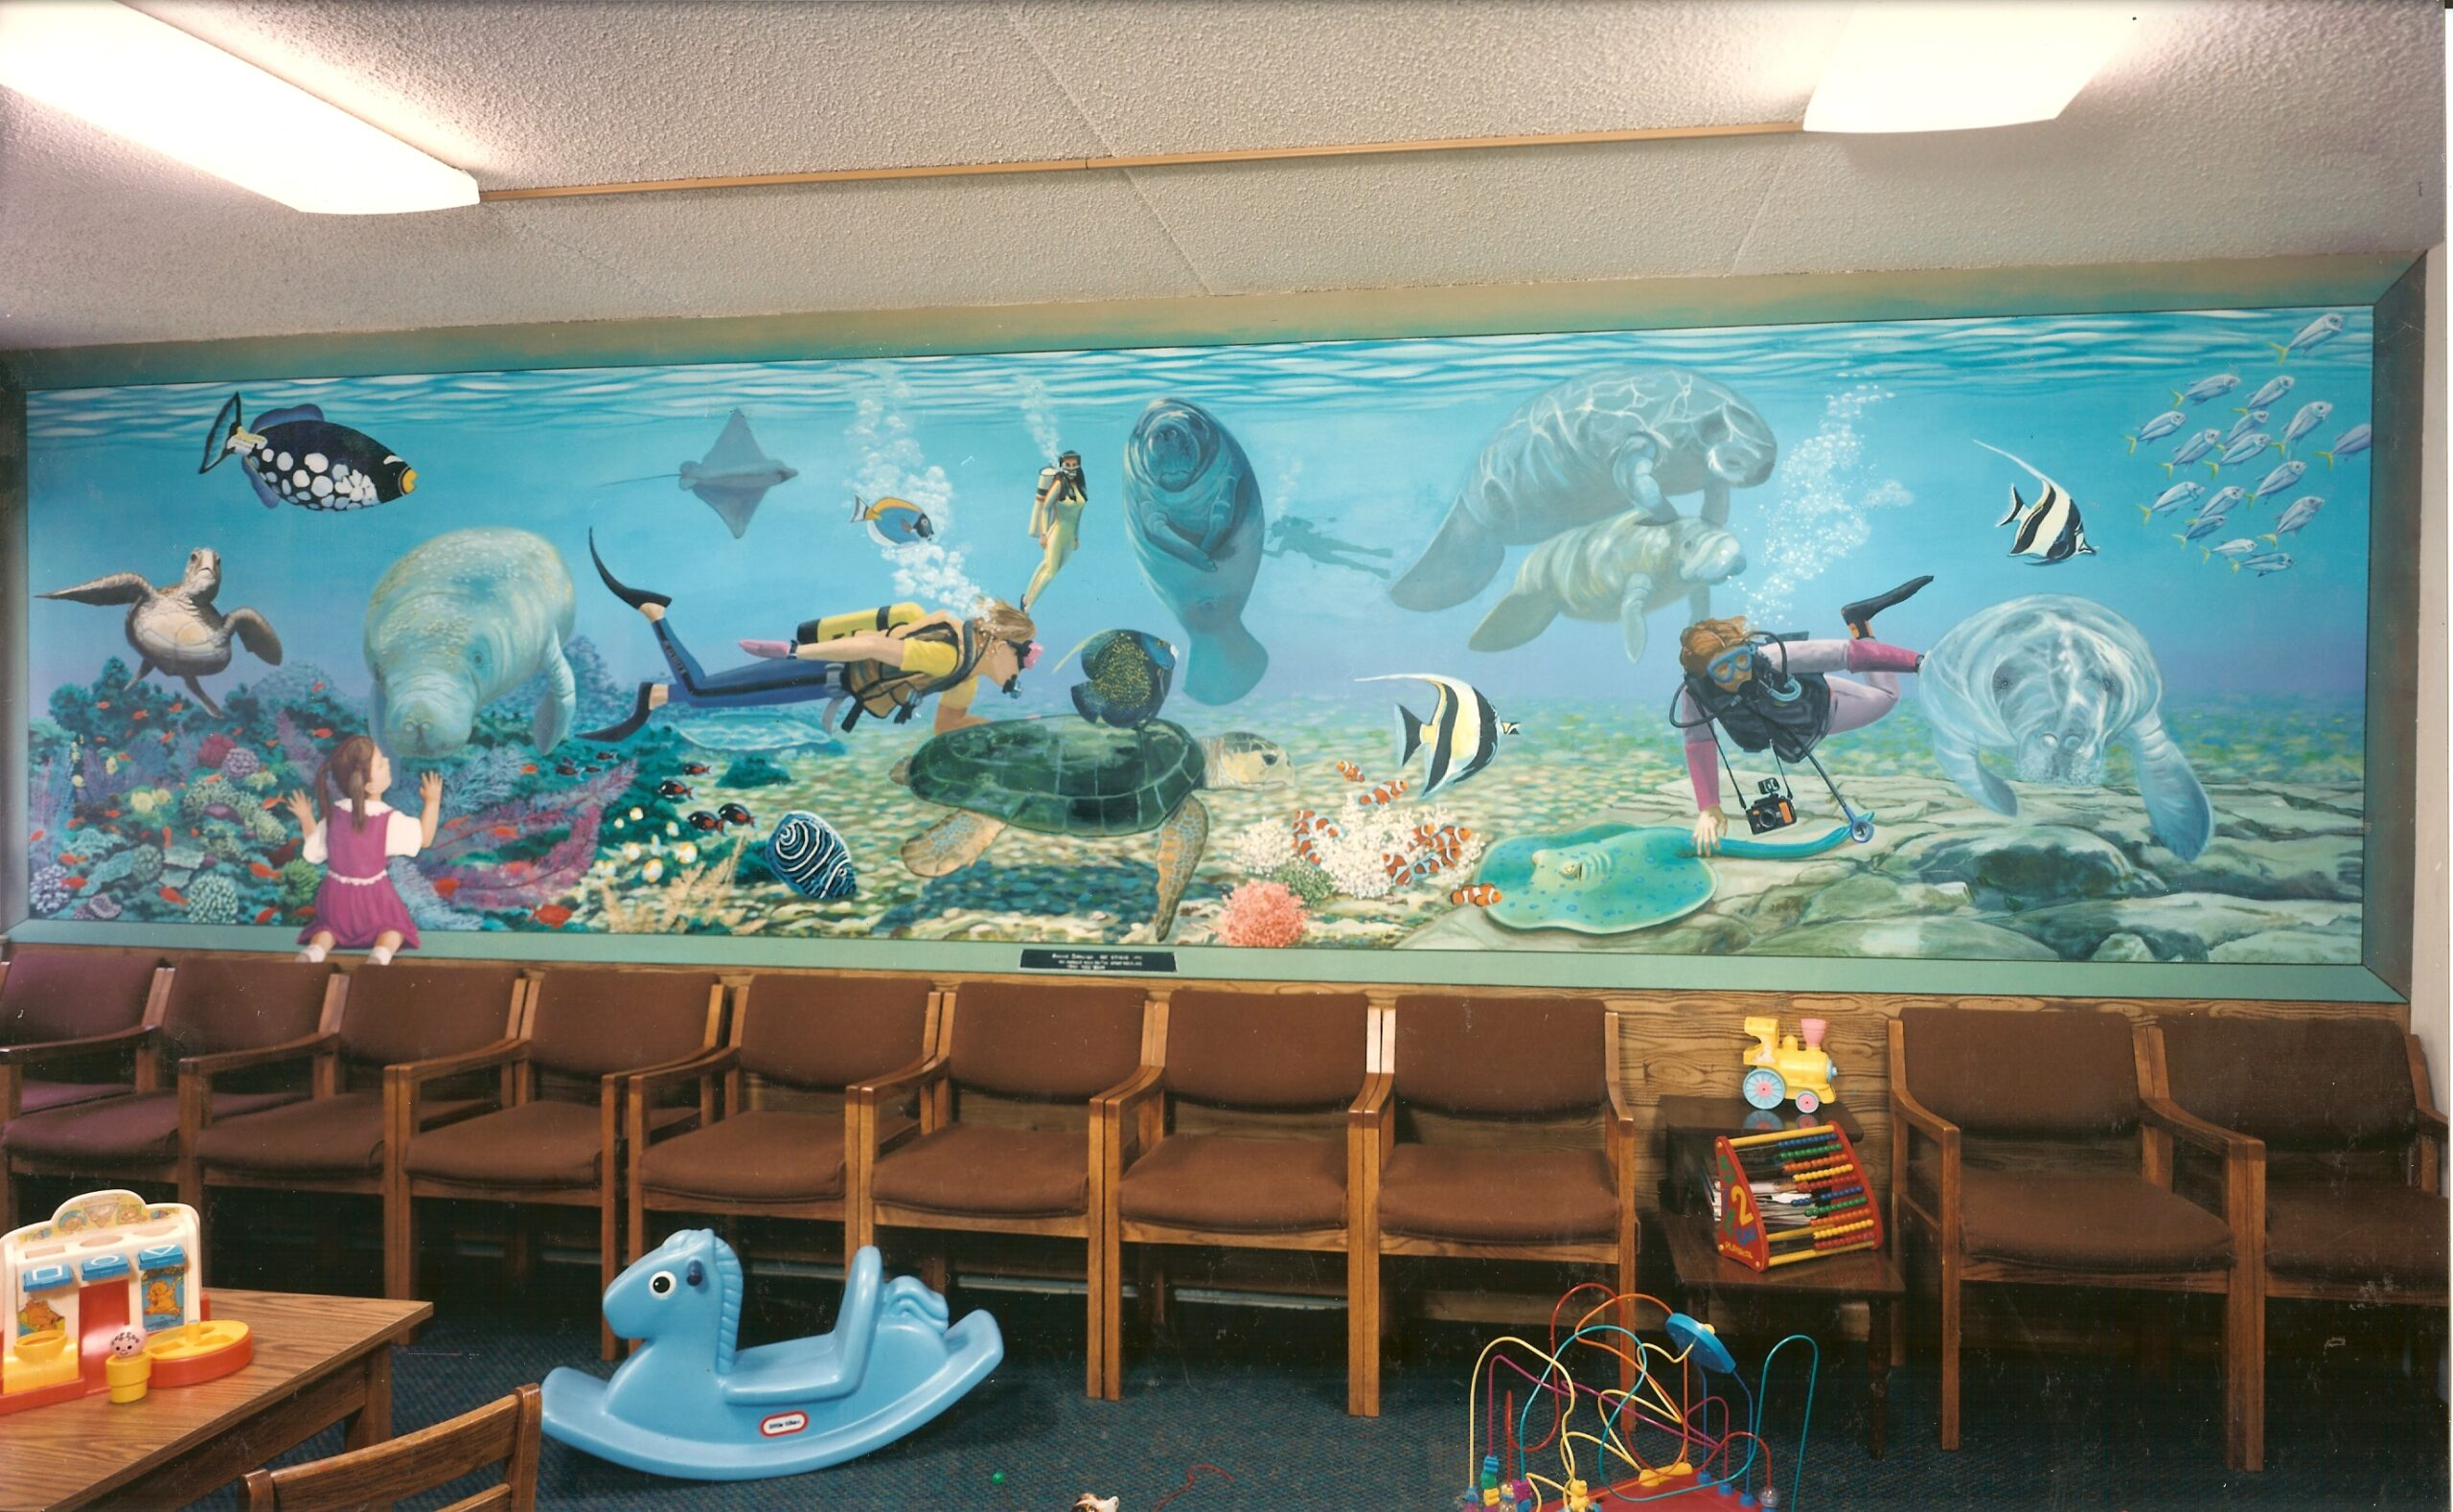 Bonnie siracusa murals fine art for Children s room mural